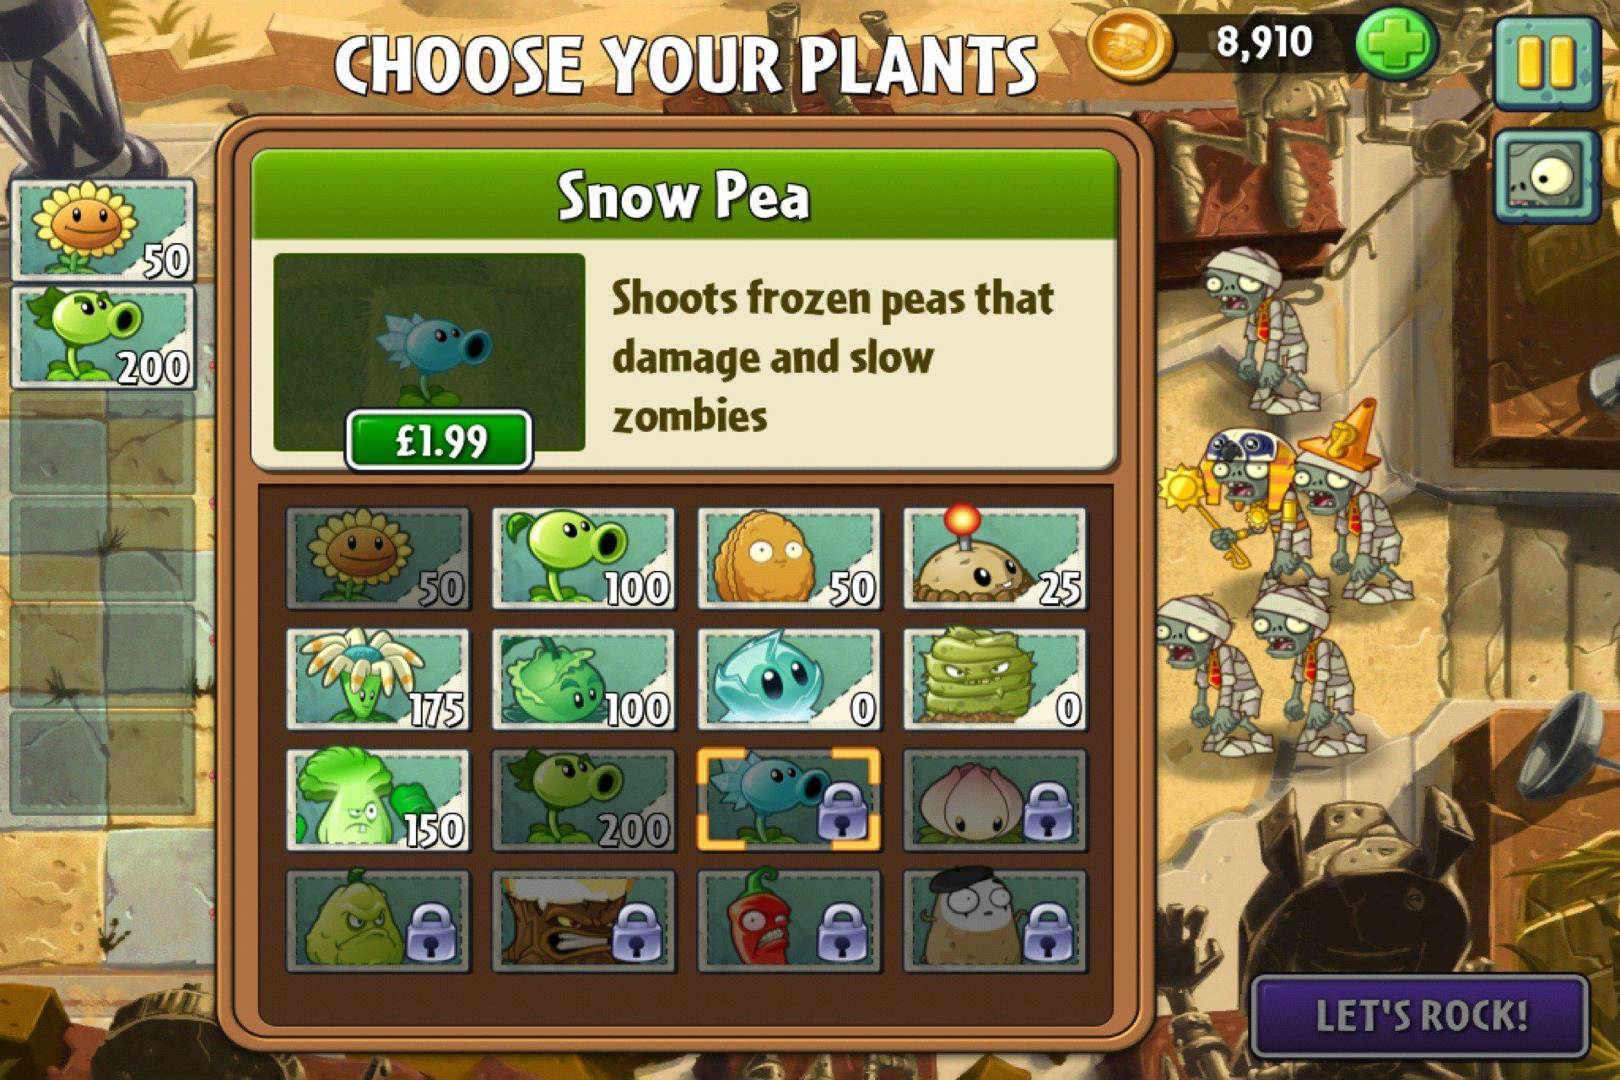 Plants vs  Zombies 2 review: it's about in-app payments ruining